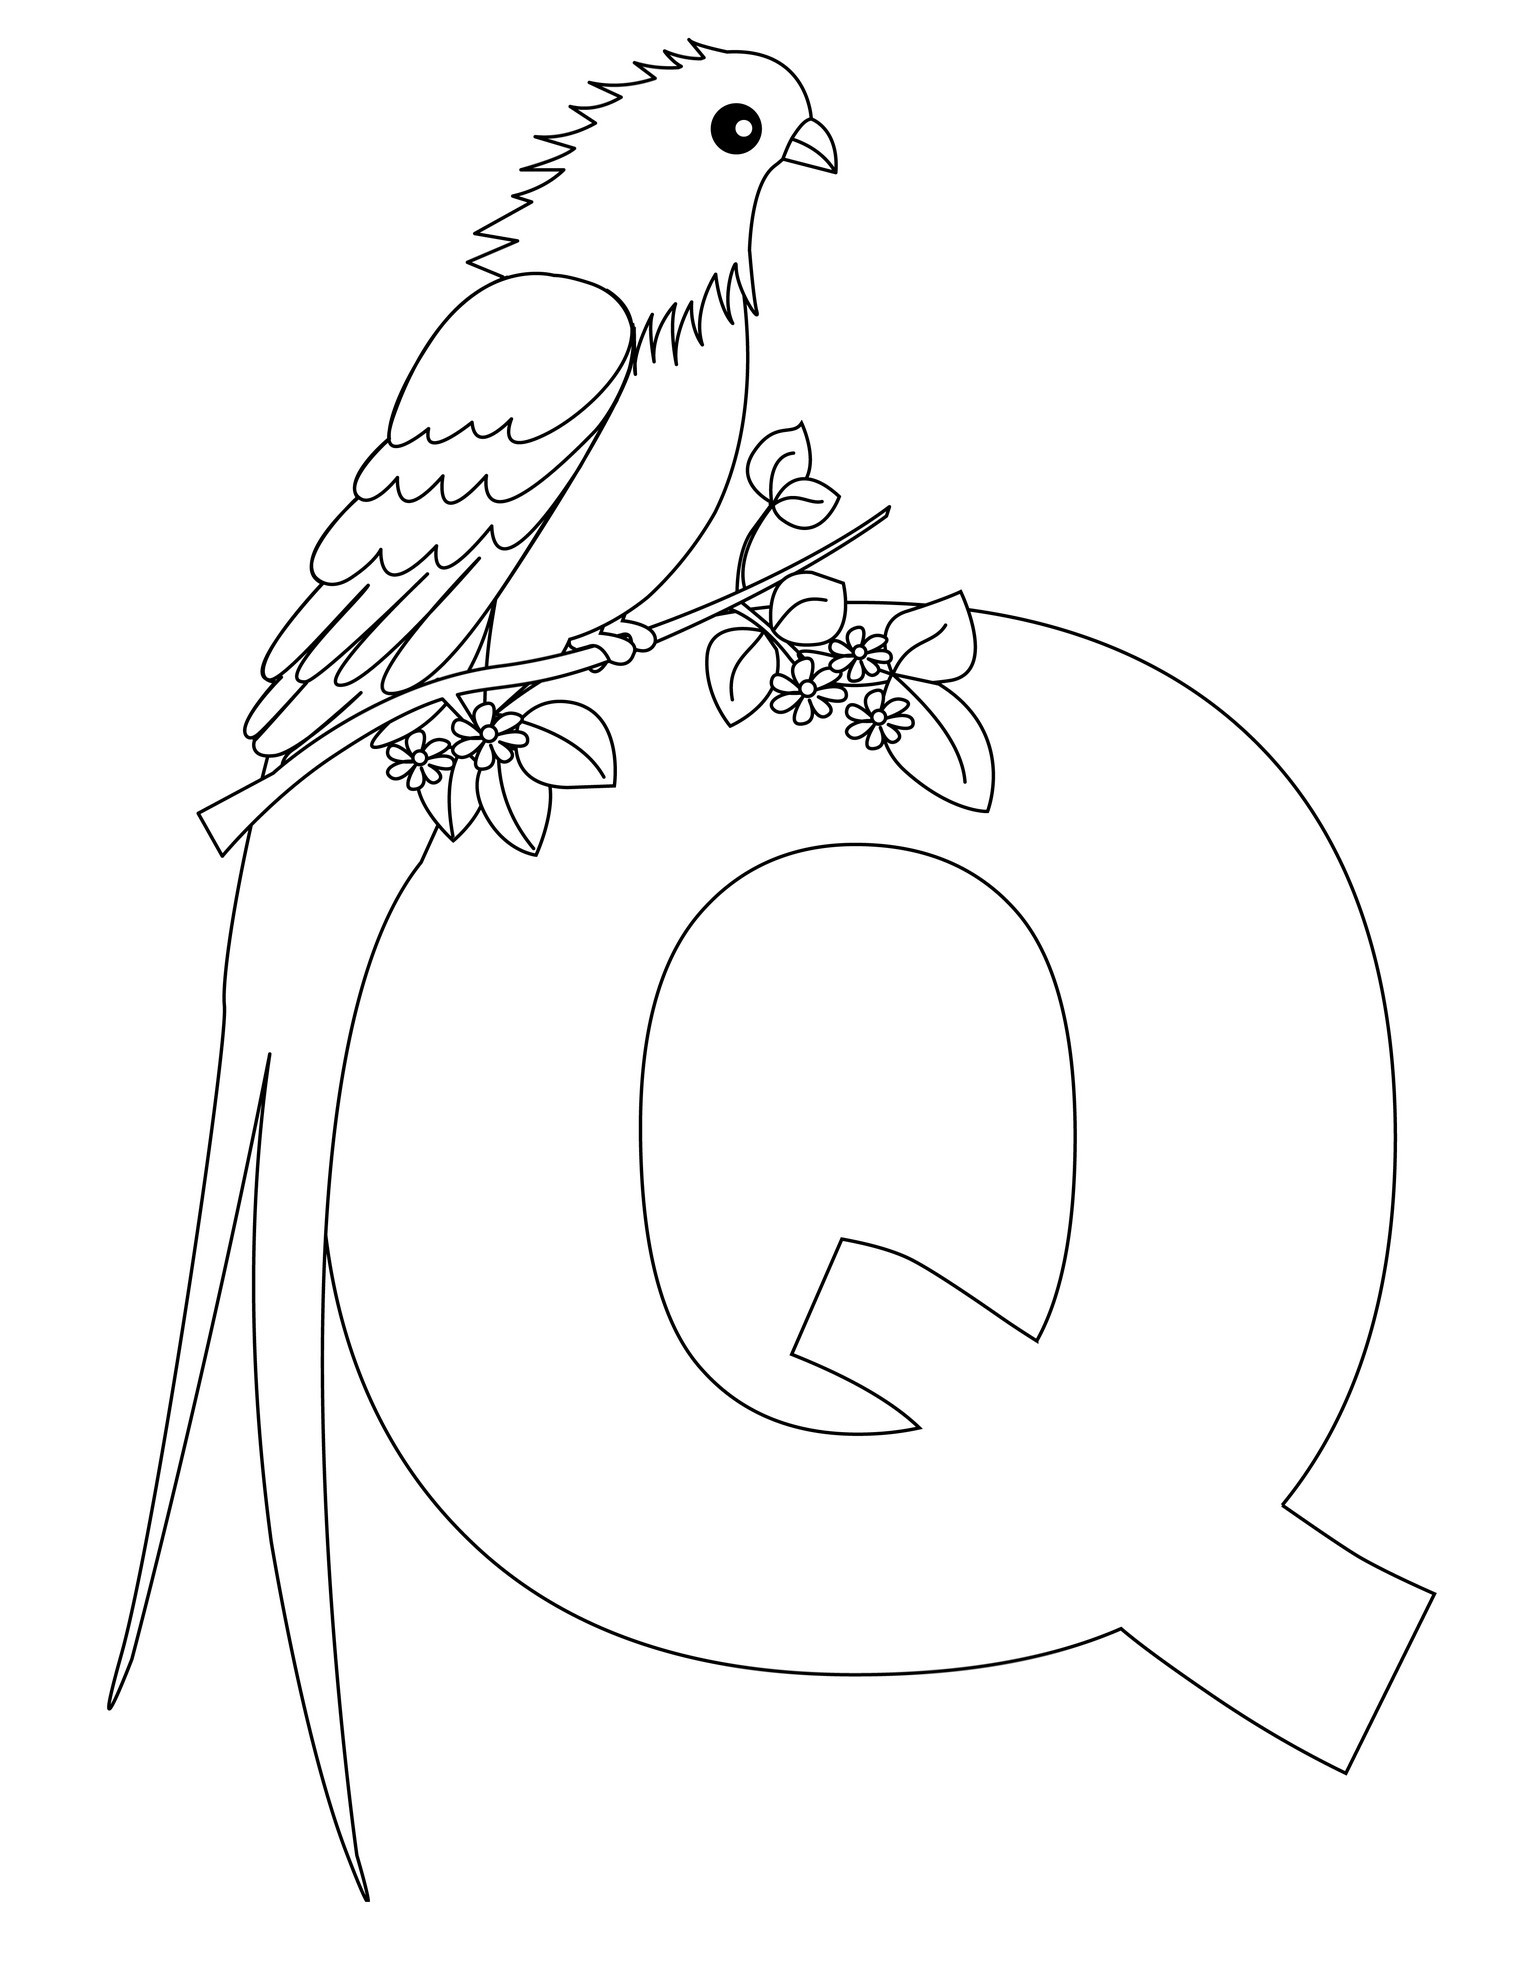 Free Printable Alphabet Coloring Pages For Kids Best Coloring Pages Q